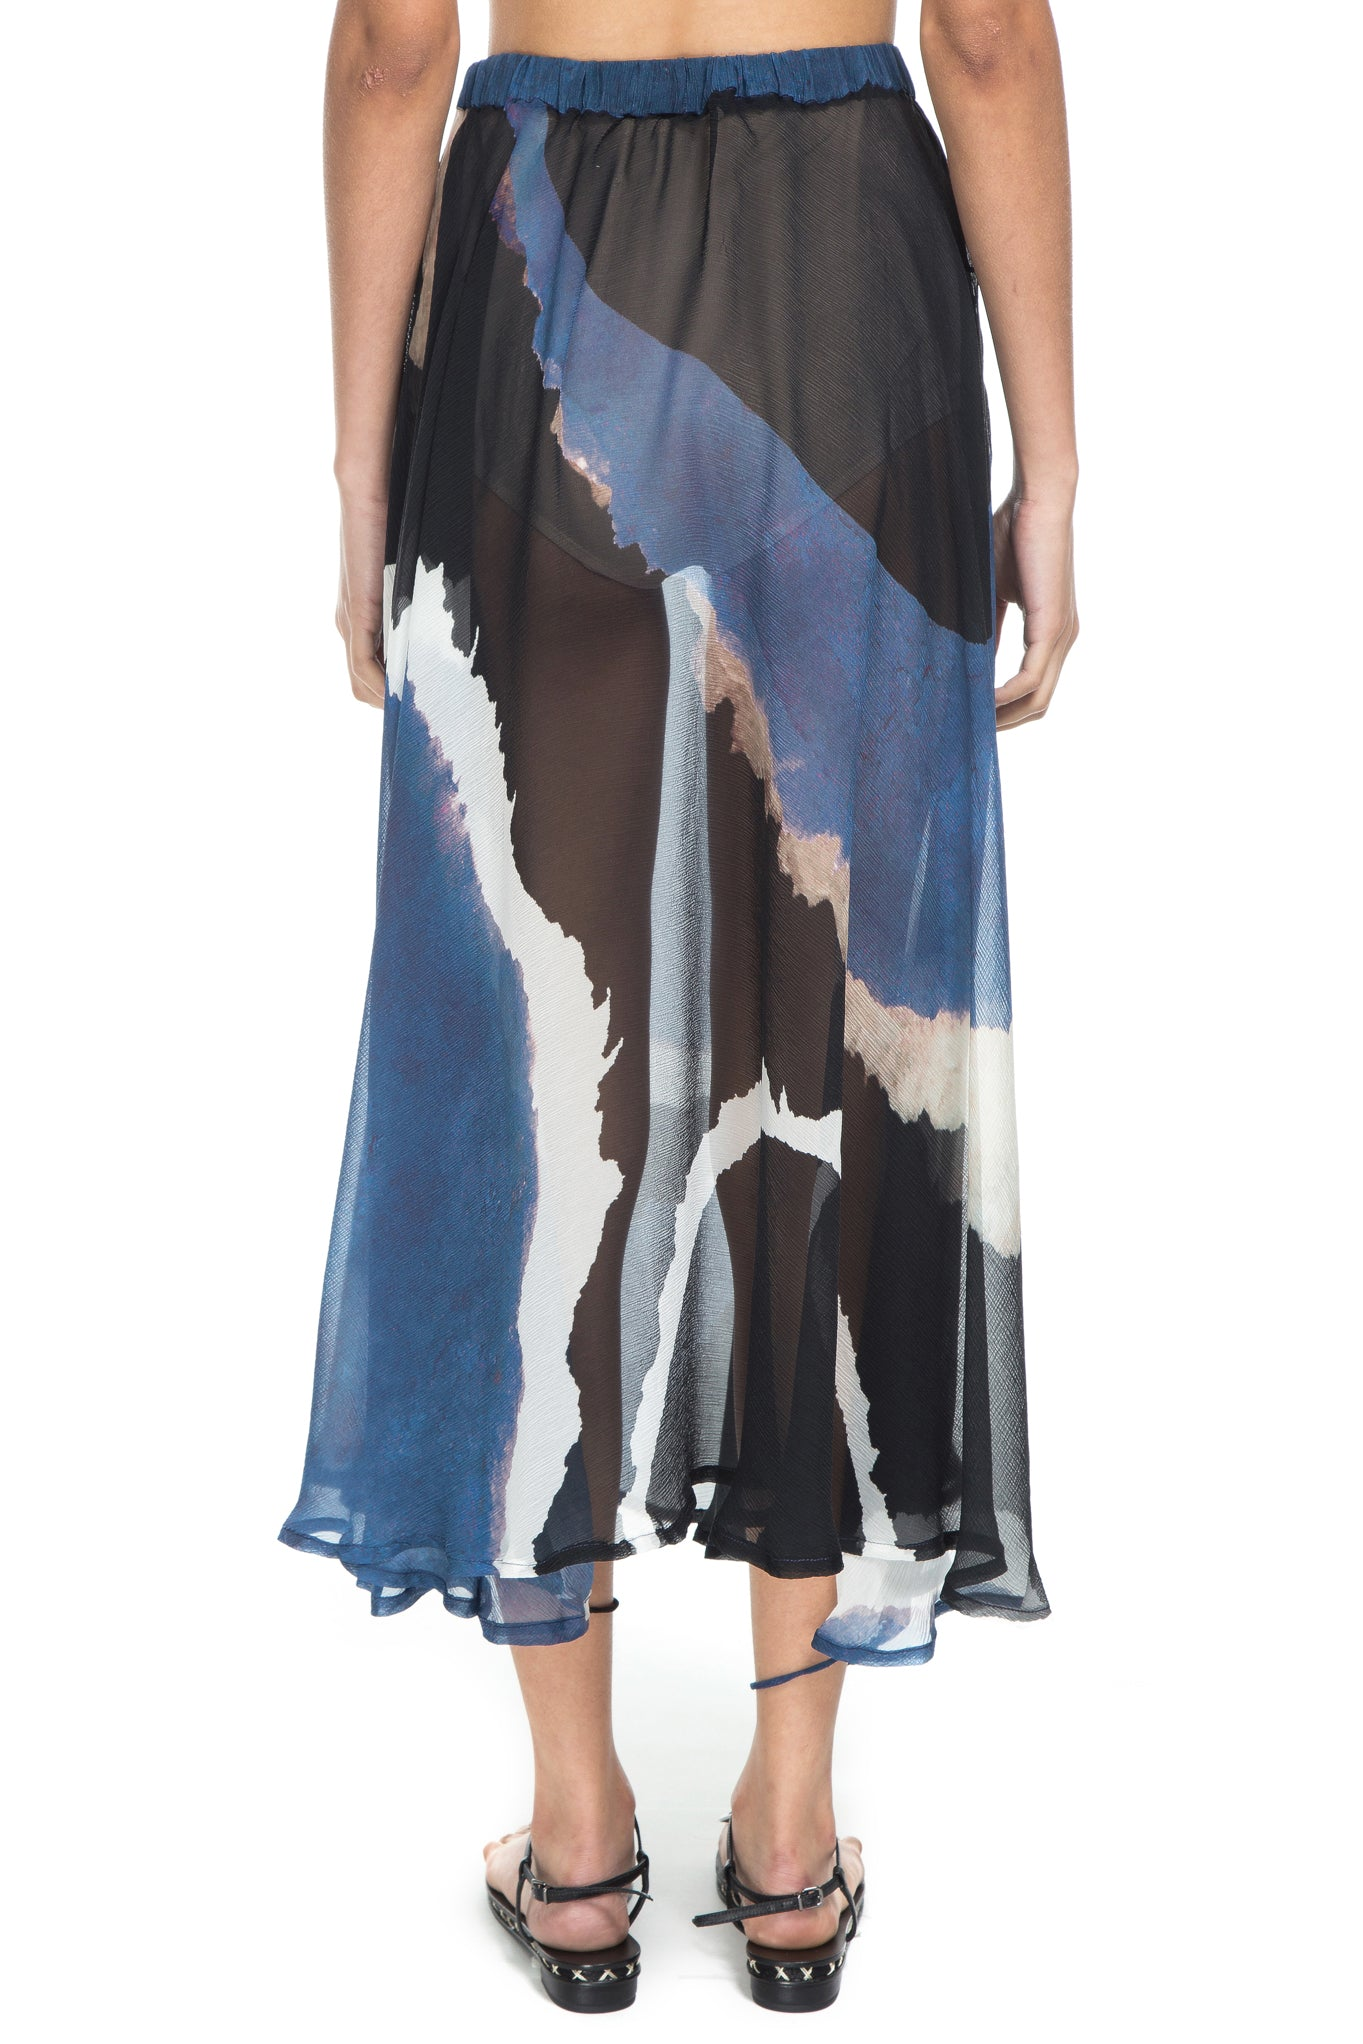 BLUE WATER ALADIN SKIRT